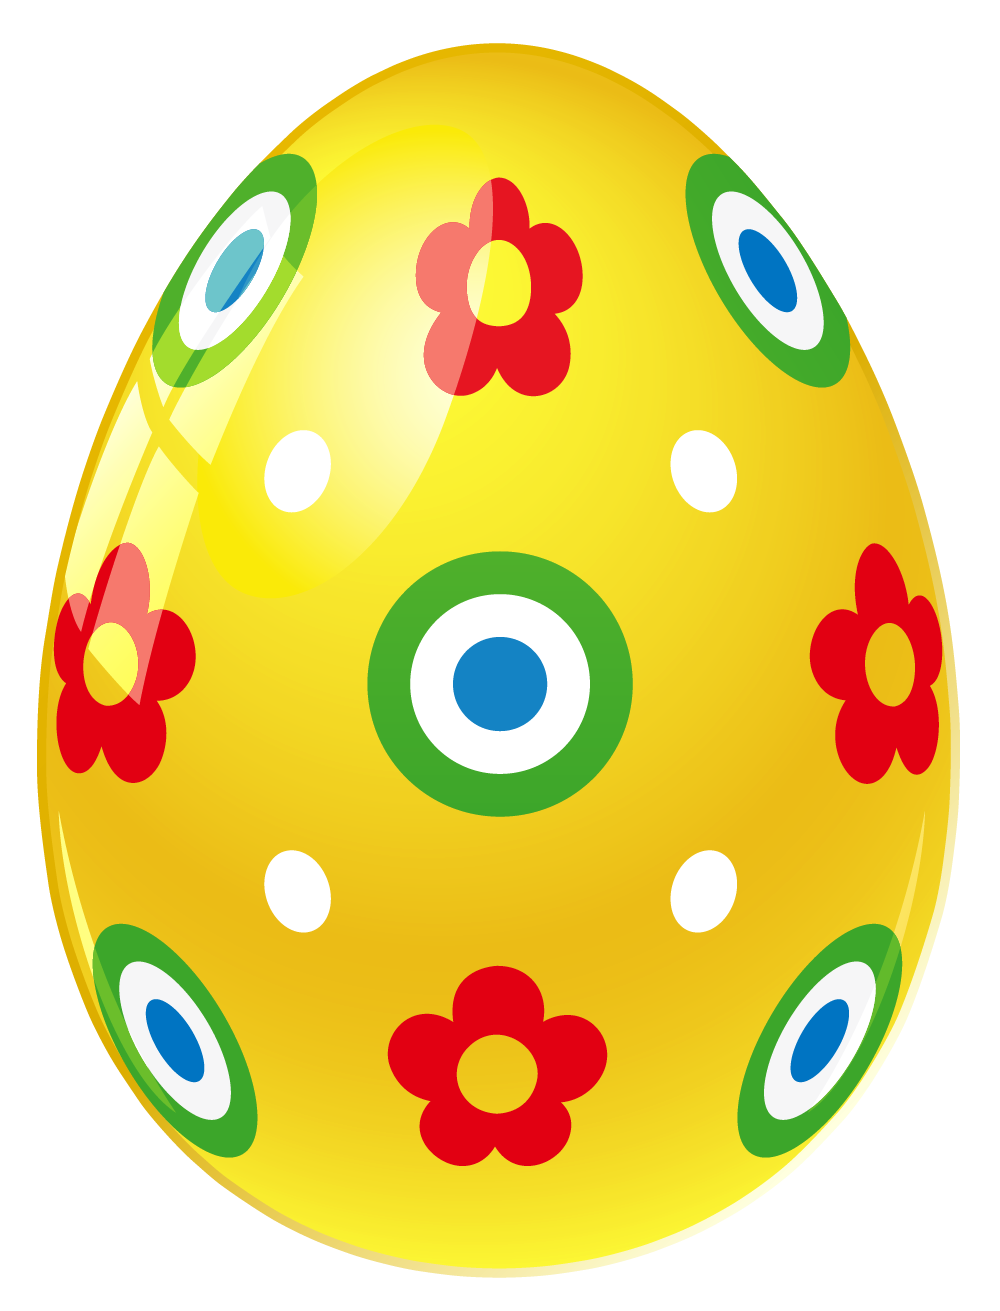 Easter garland png. Eggs clipart group yellow